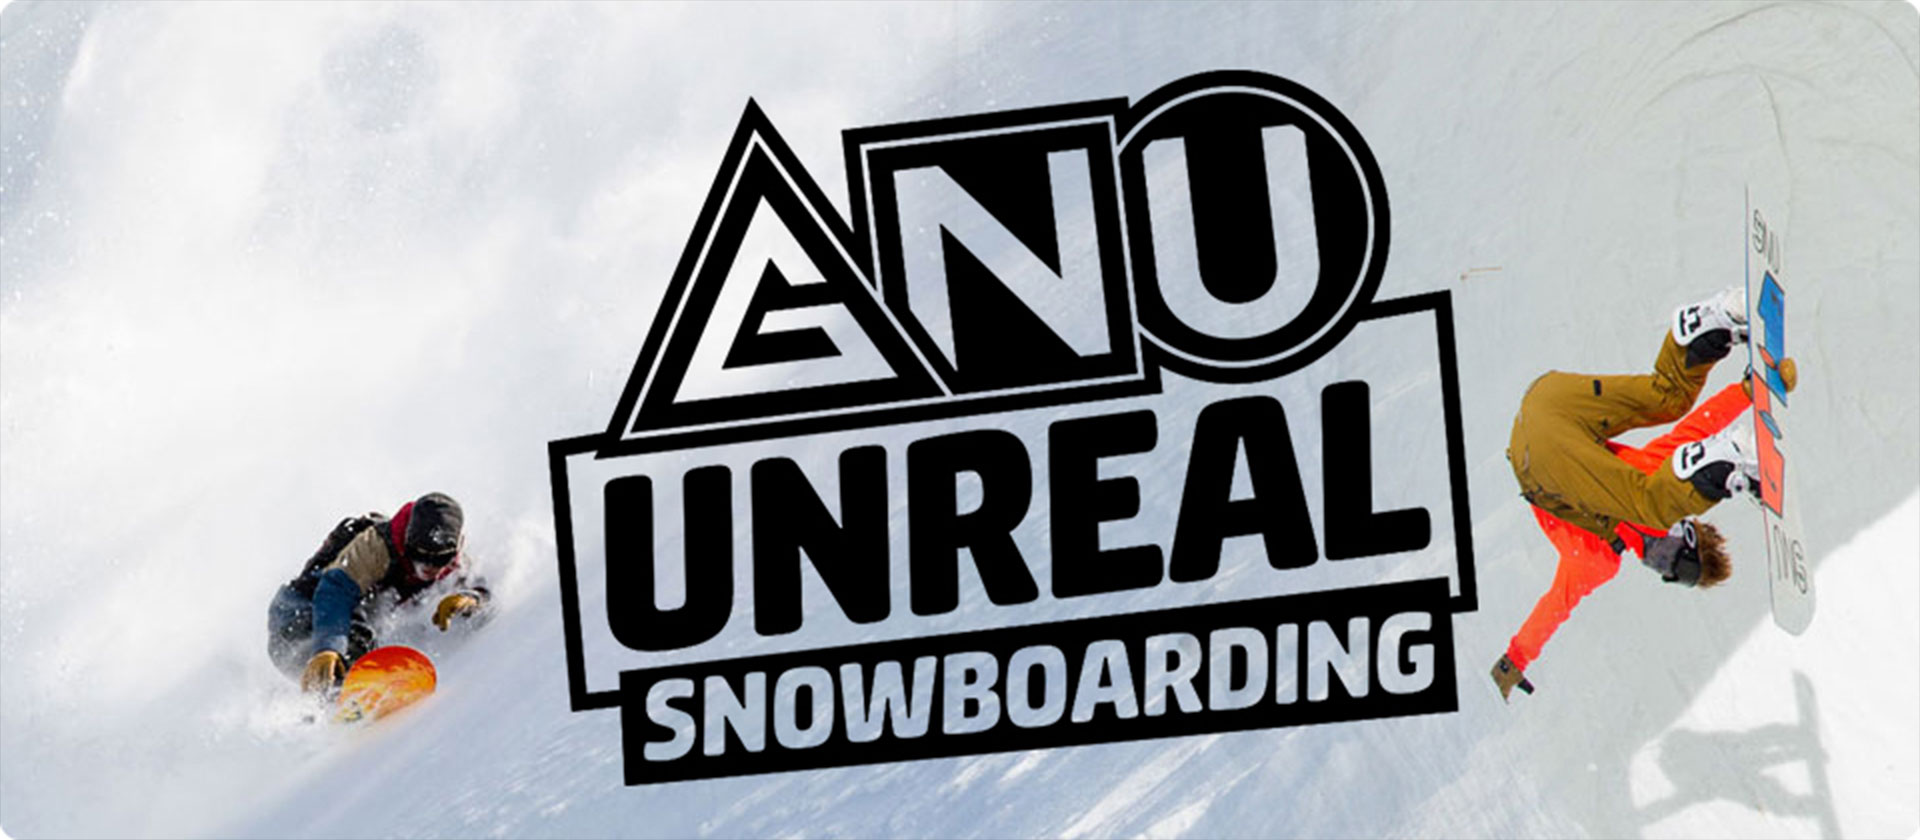 GNU Unreal Snowboarding Available at SoCal Surf Shop